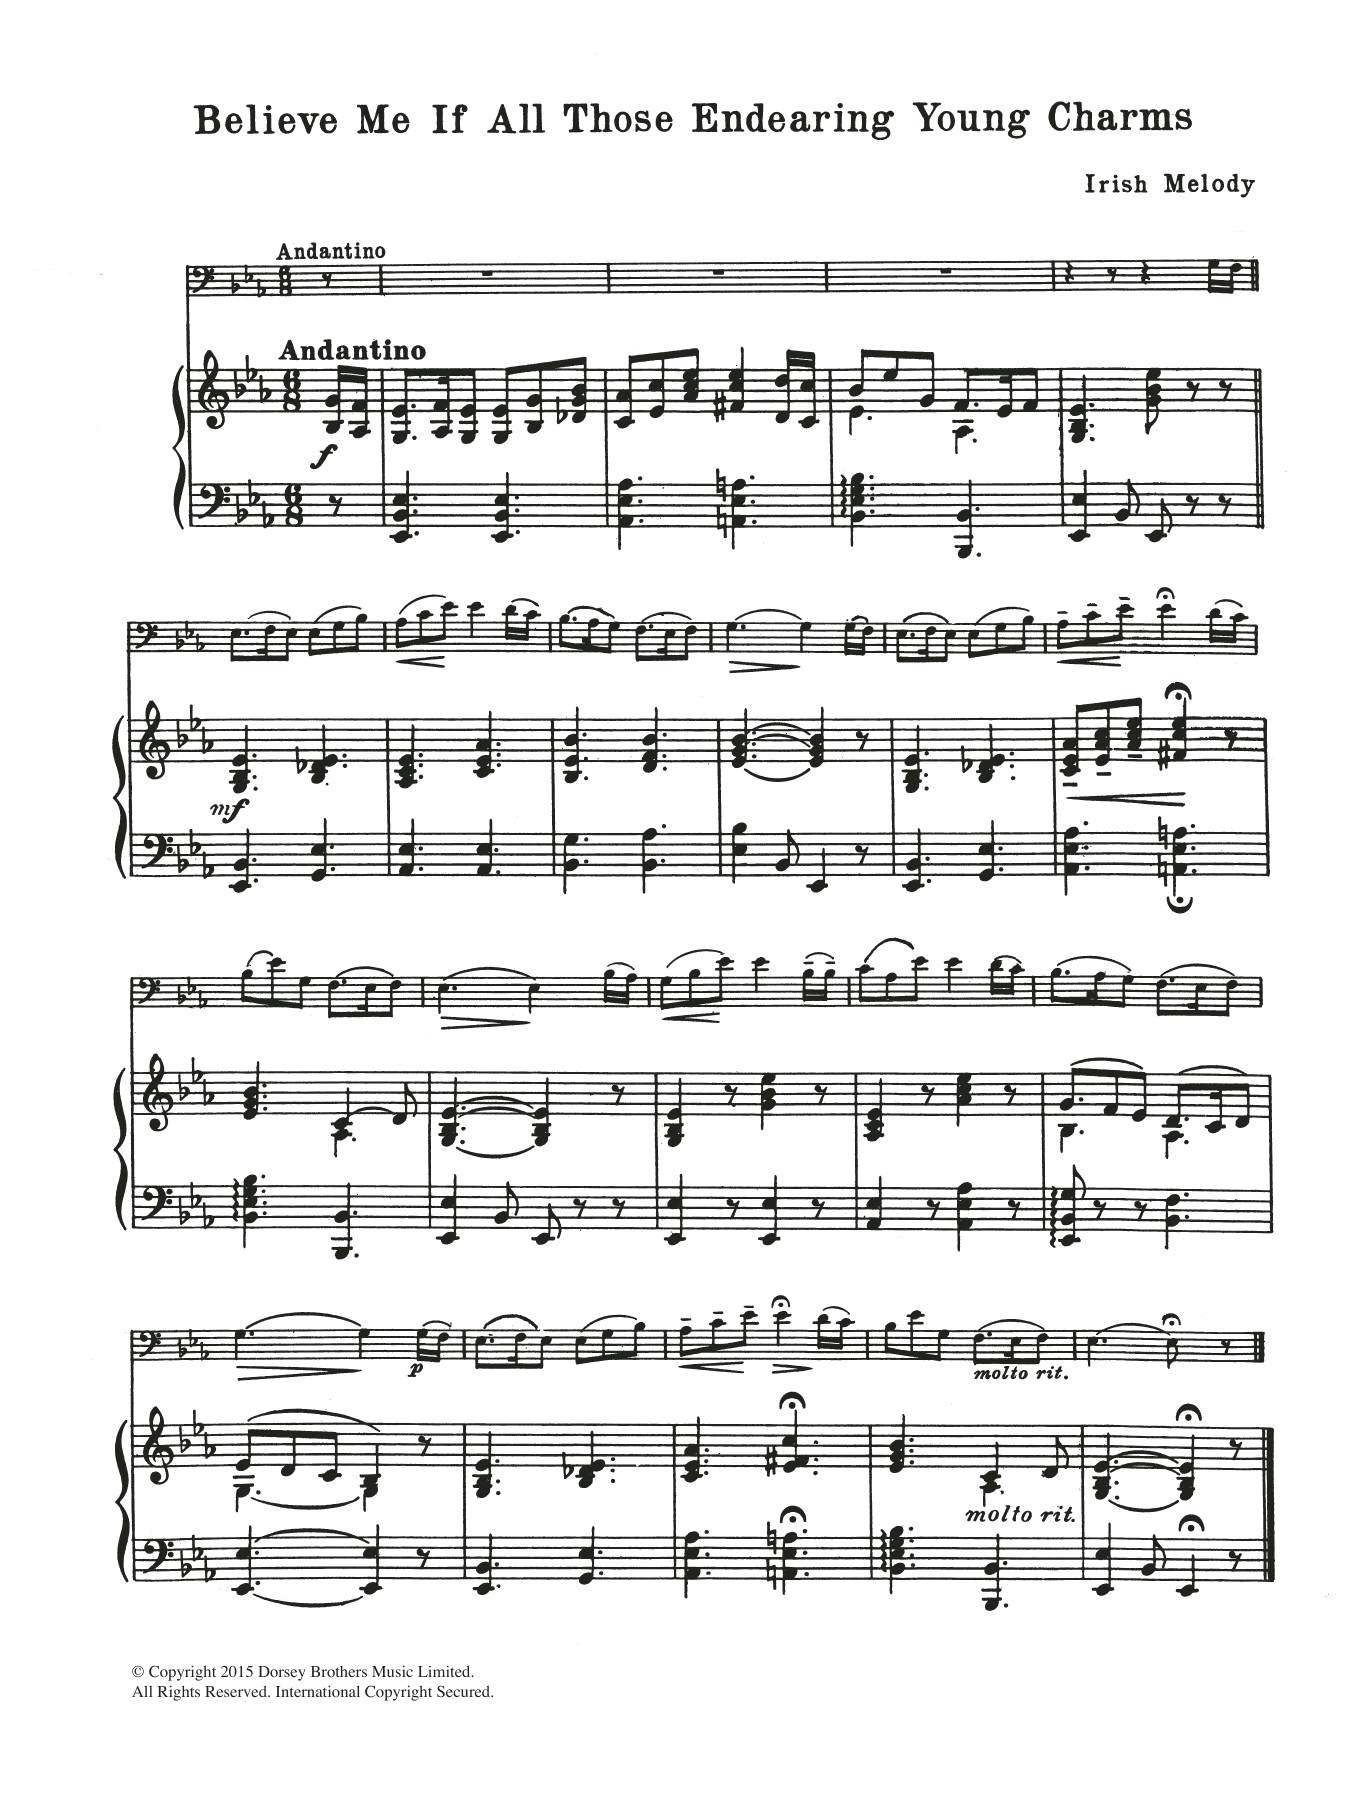 Believe Me If All Those Endearing Young Charms Sheet Music